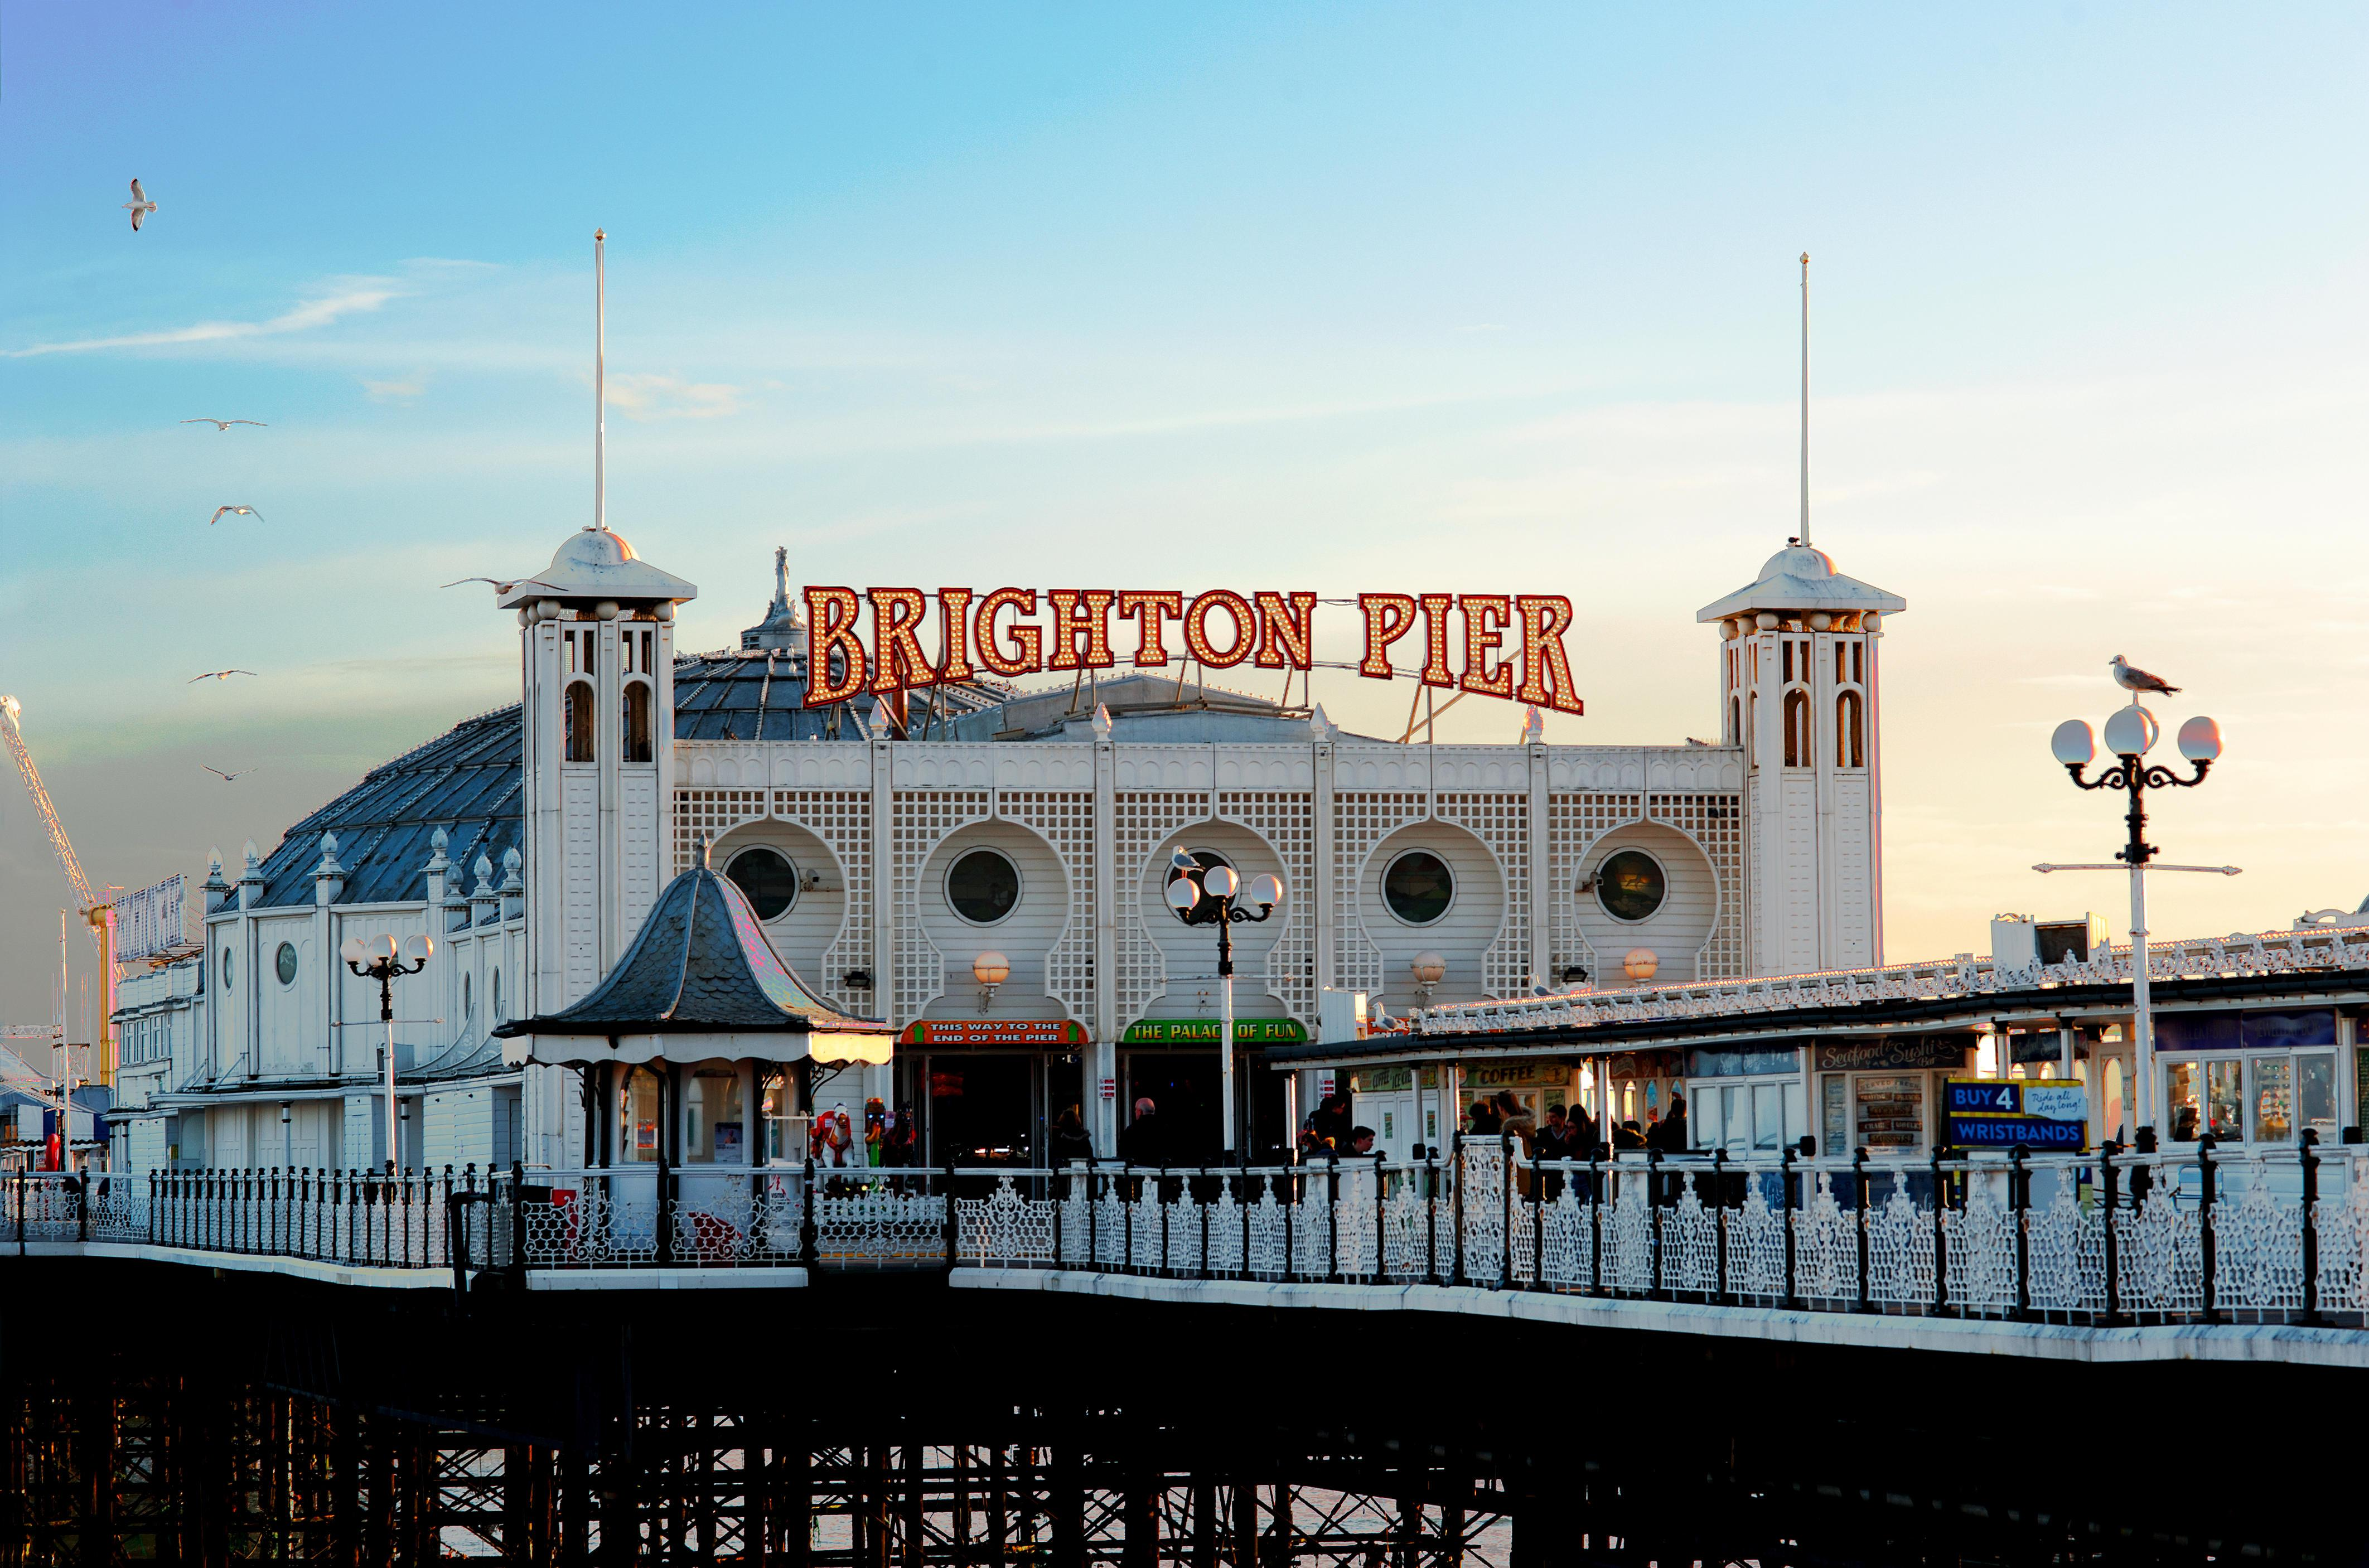 Private vehicles could be banned in Brighton to help cut air pollution